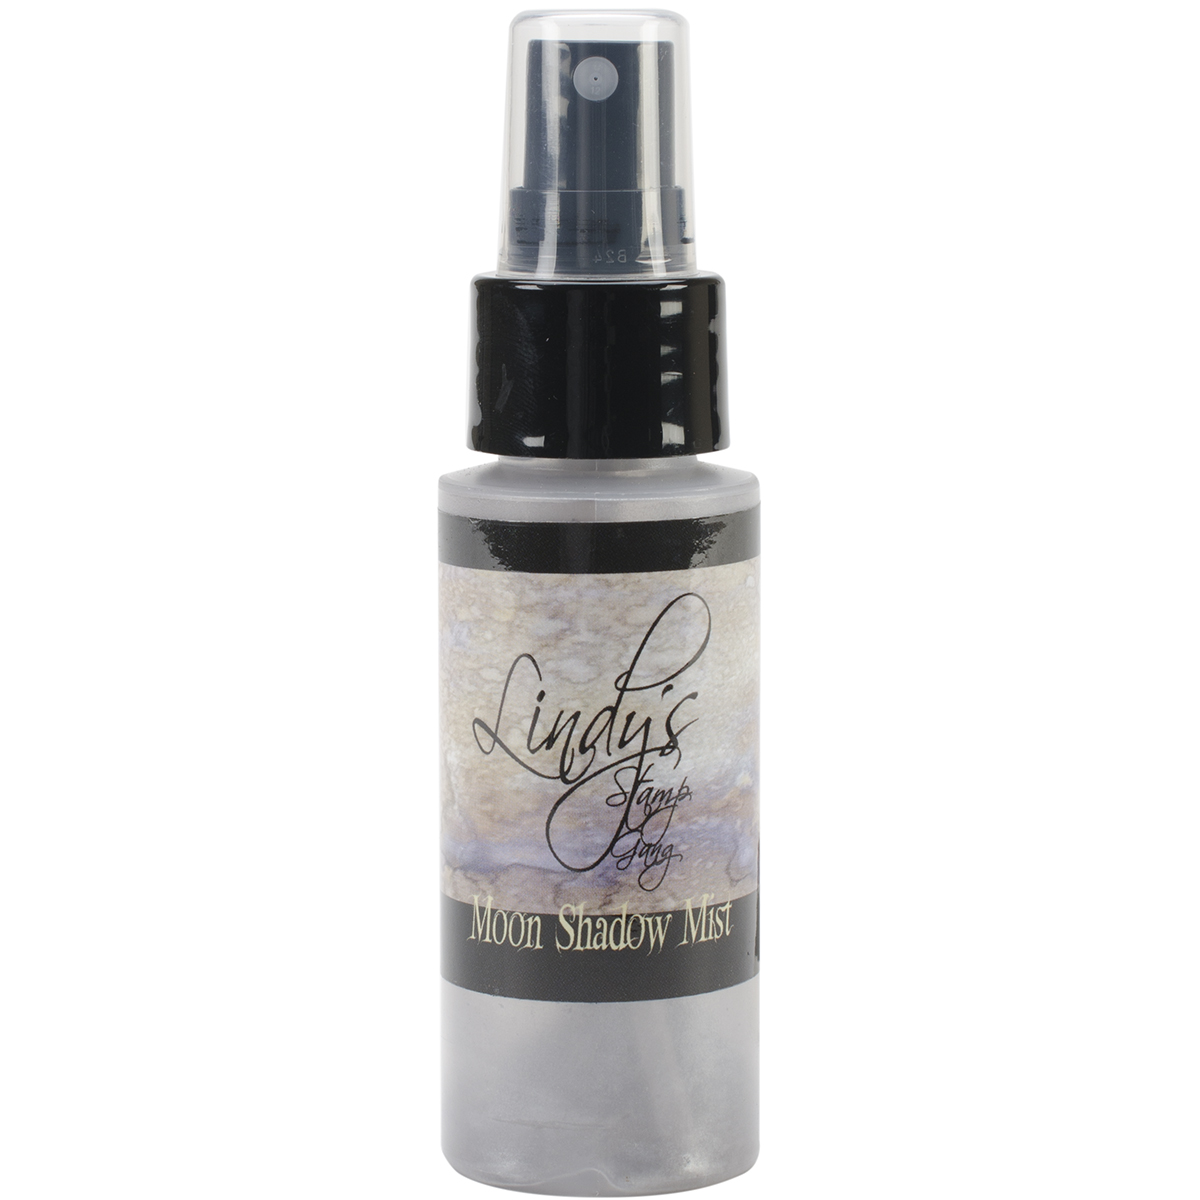 Lindy's Stamp Gang Moon Shadow Mist 2oz Bottle-Long John Silver